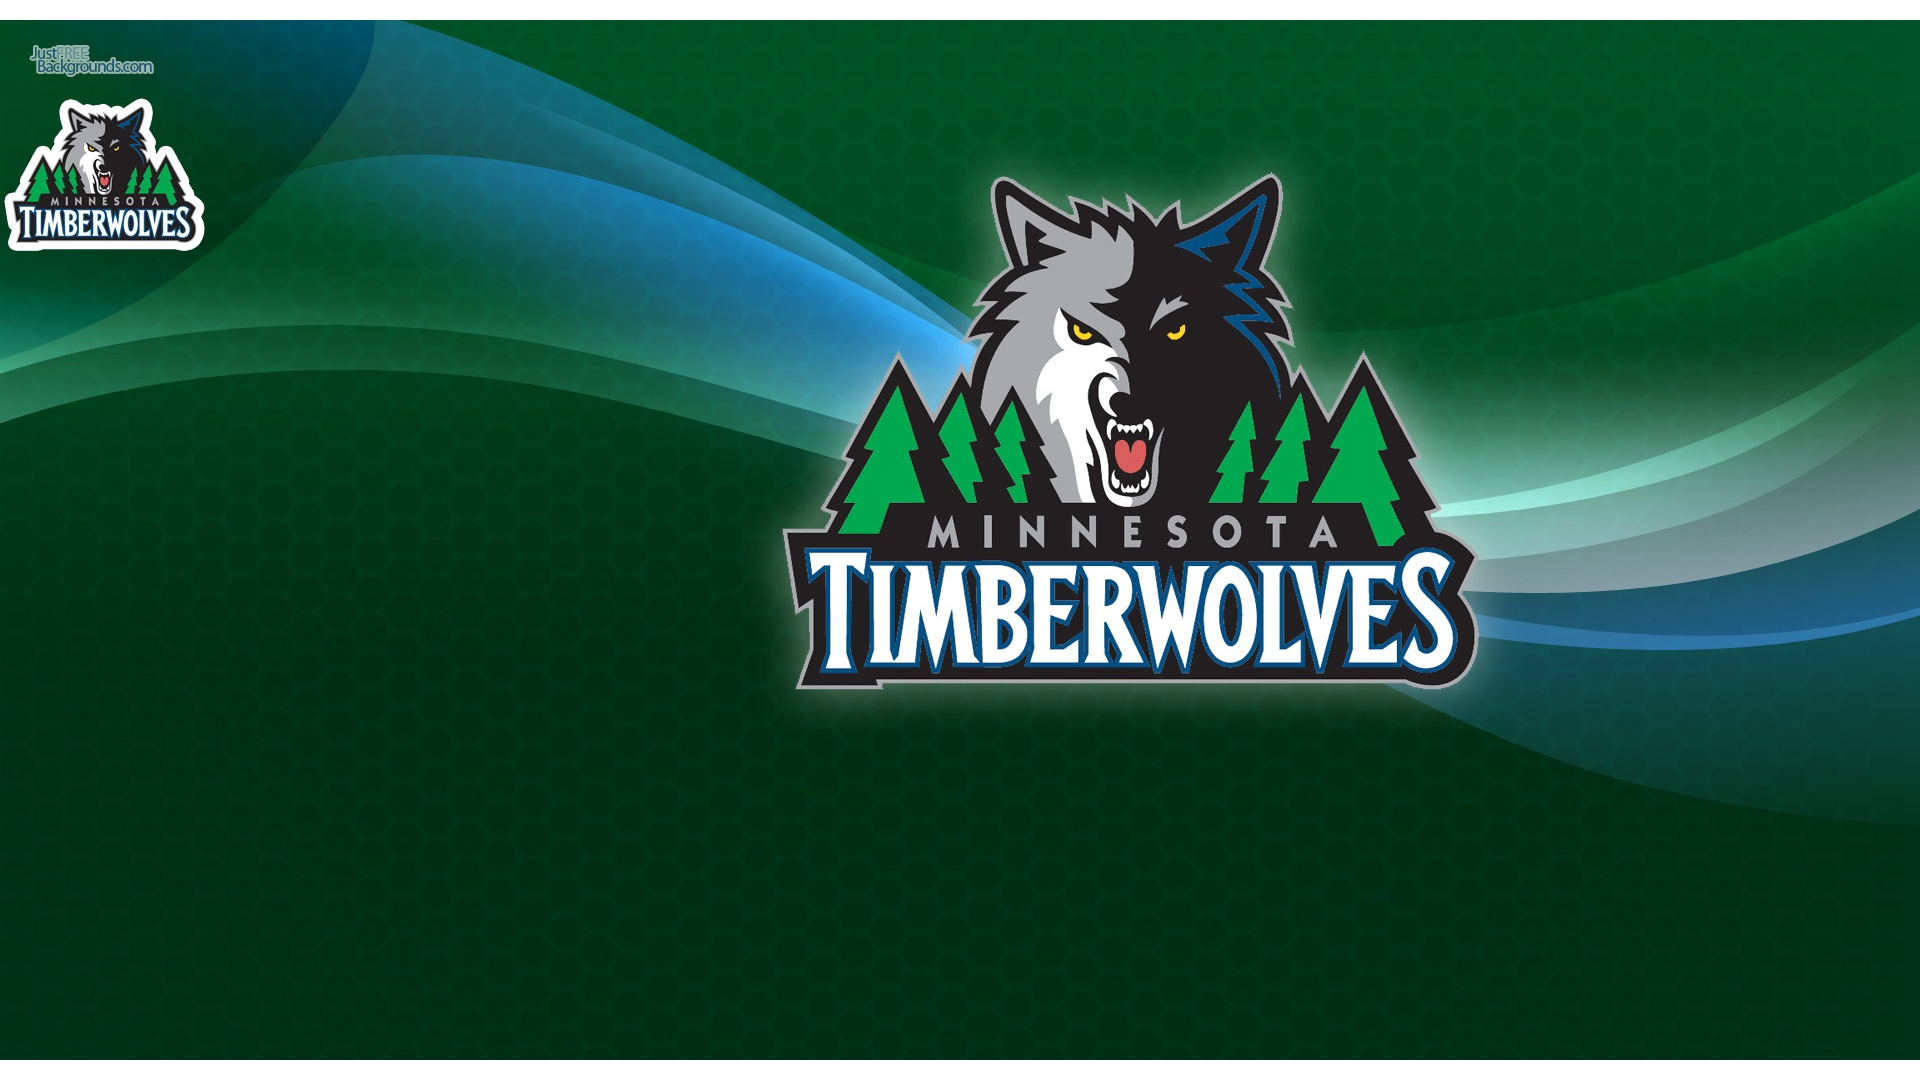 Wallpaper Minnesota Timberwolves Wolves Modern Daily Stars Images 1920x1080